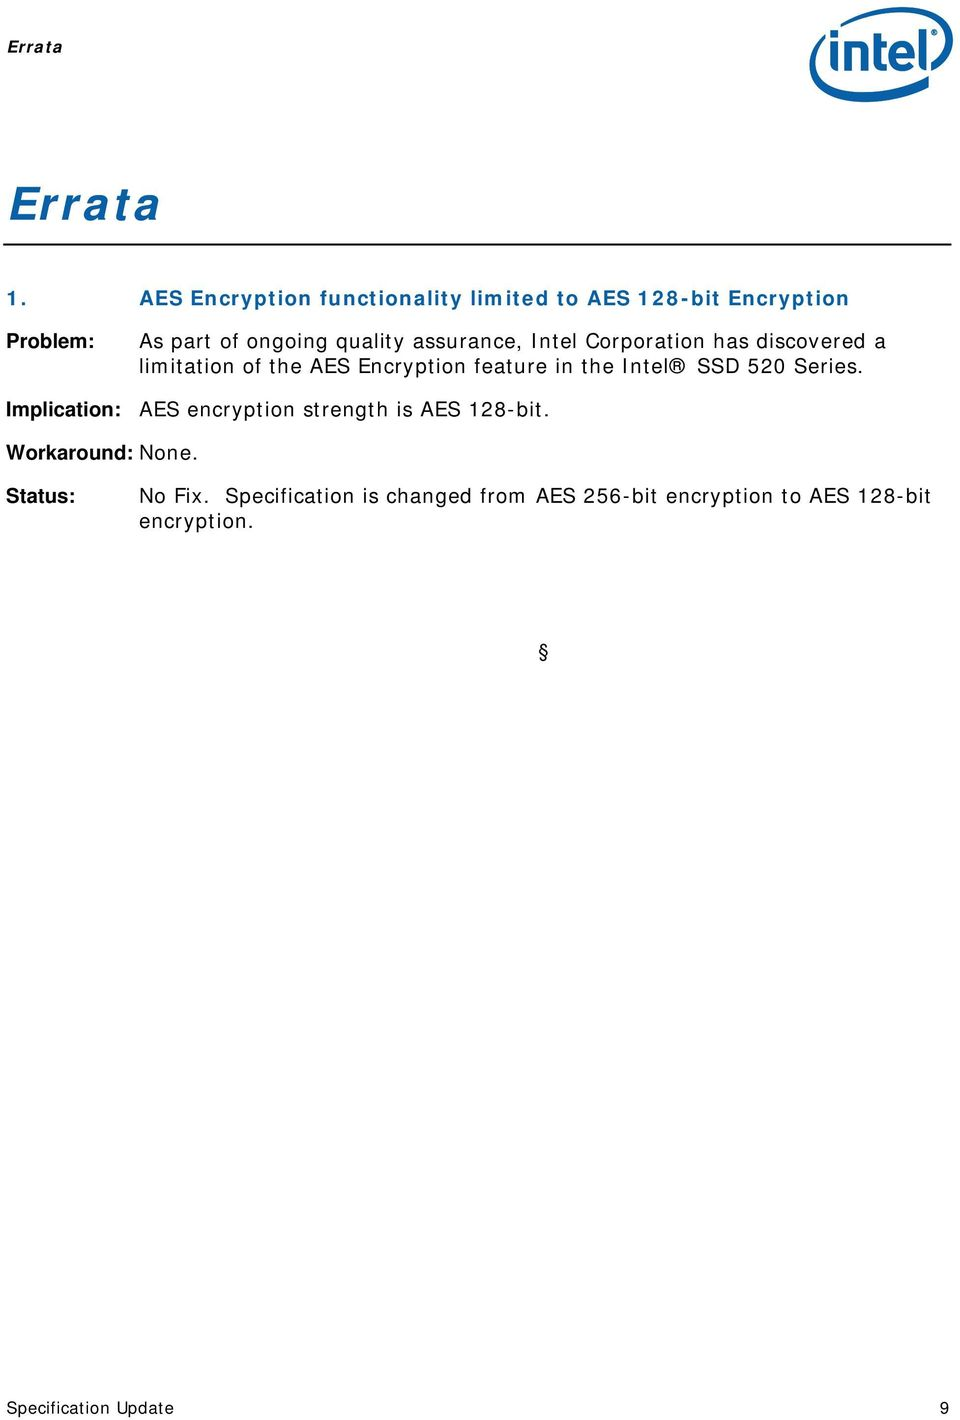 assurance, Intel Corporation has discovered a limitation of the AES Encryption feature in the Intel SSD